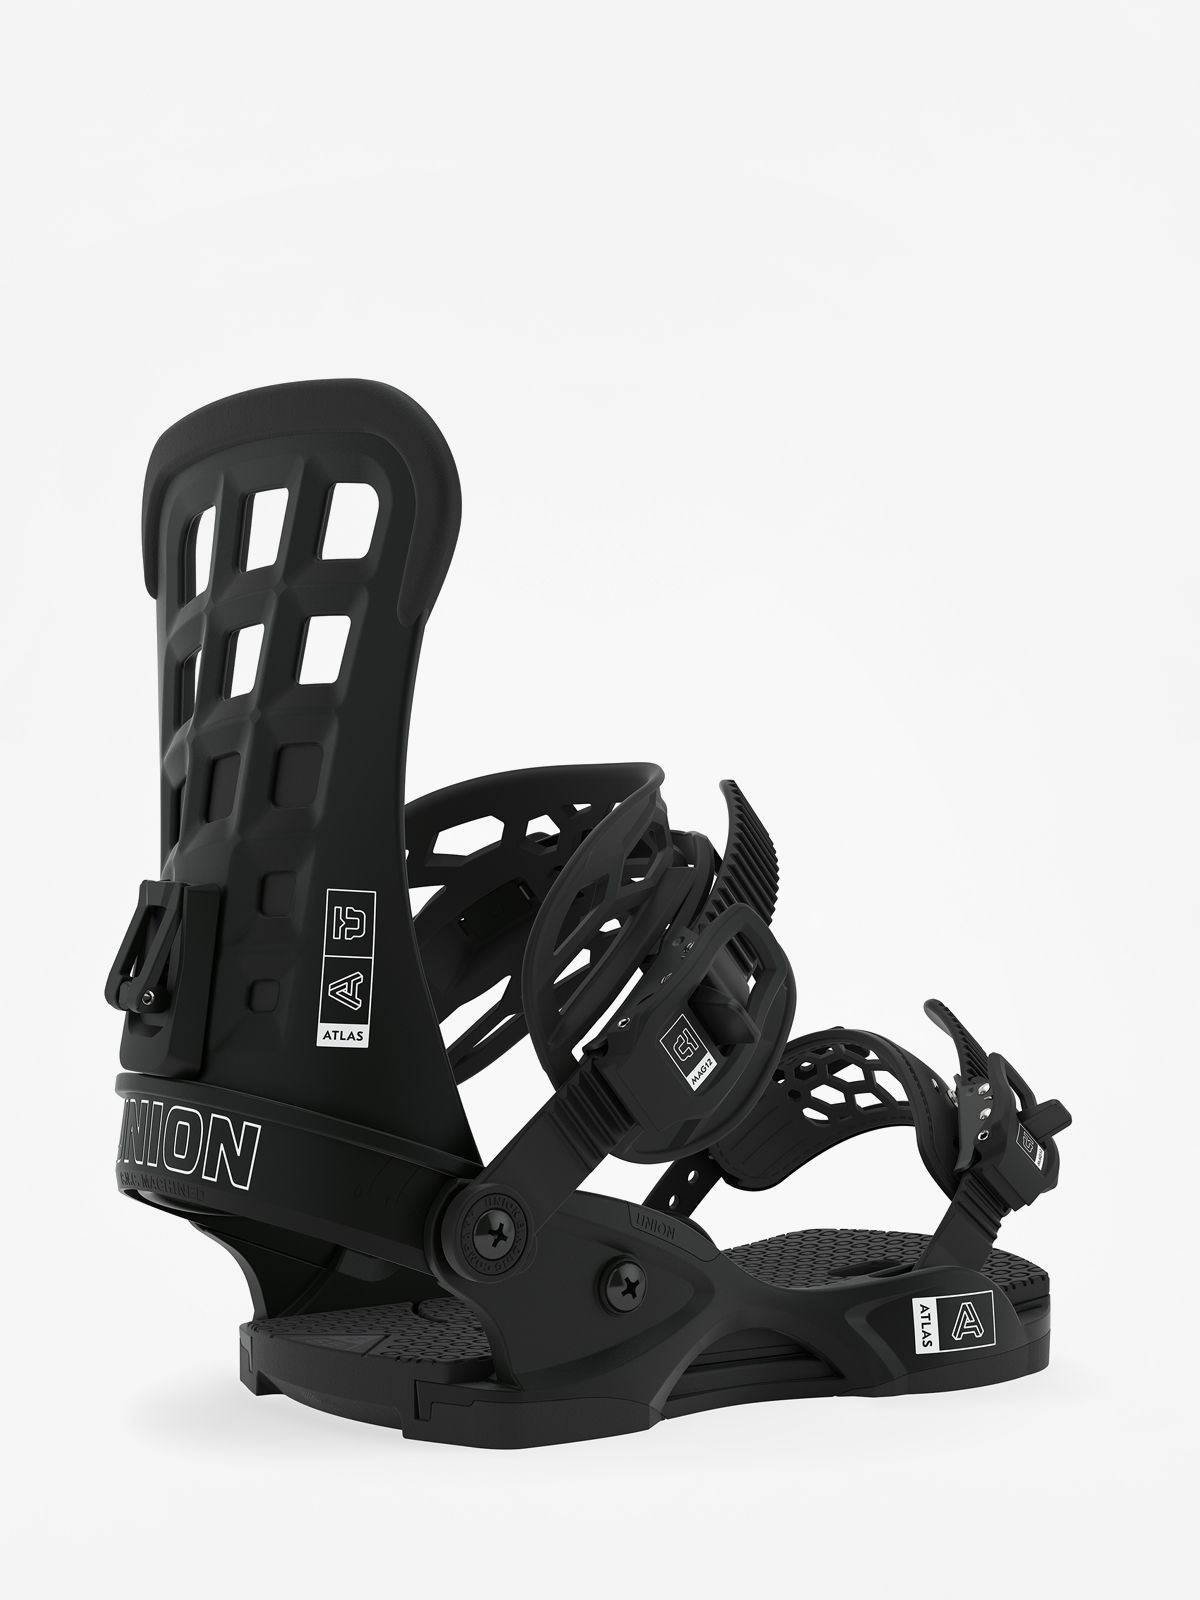 Wiu0105zania snowboardowe Union Atlas (black)